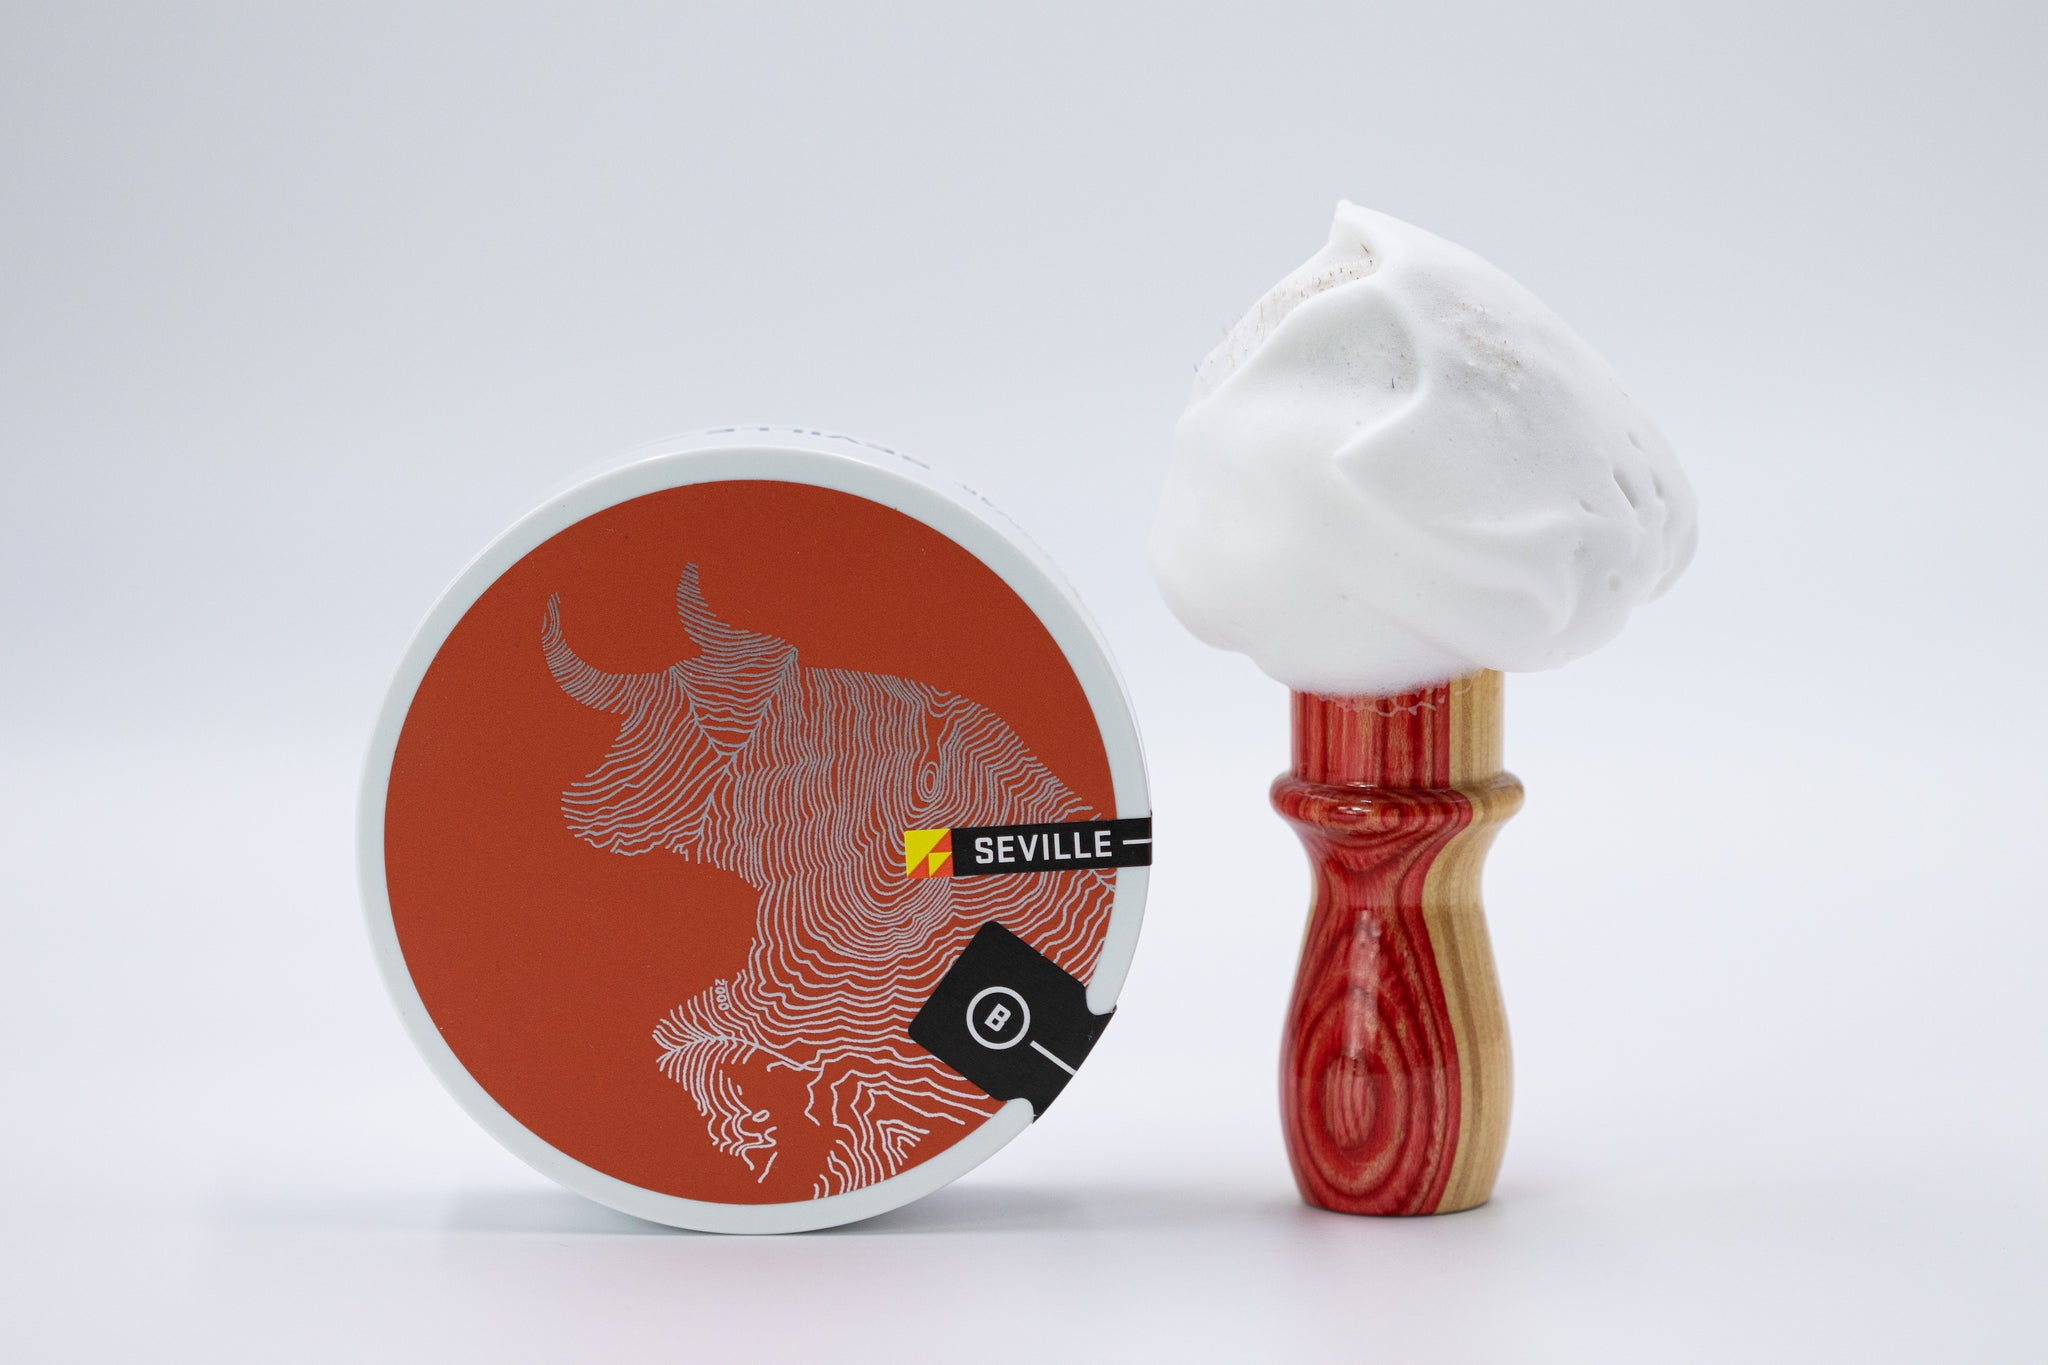 Barrister and Mann 'Seville' Luxury Shaving Soap